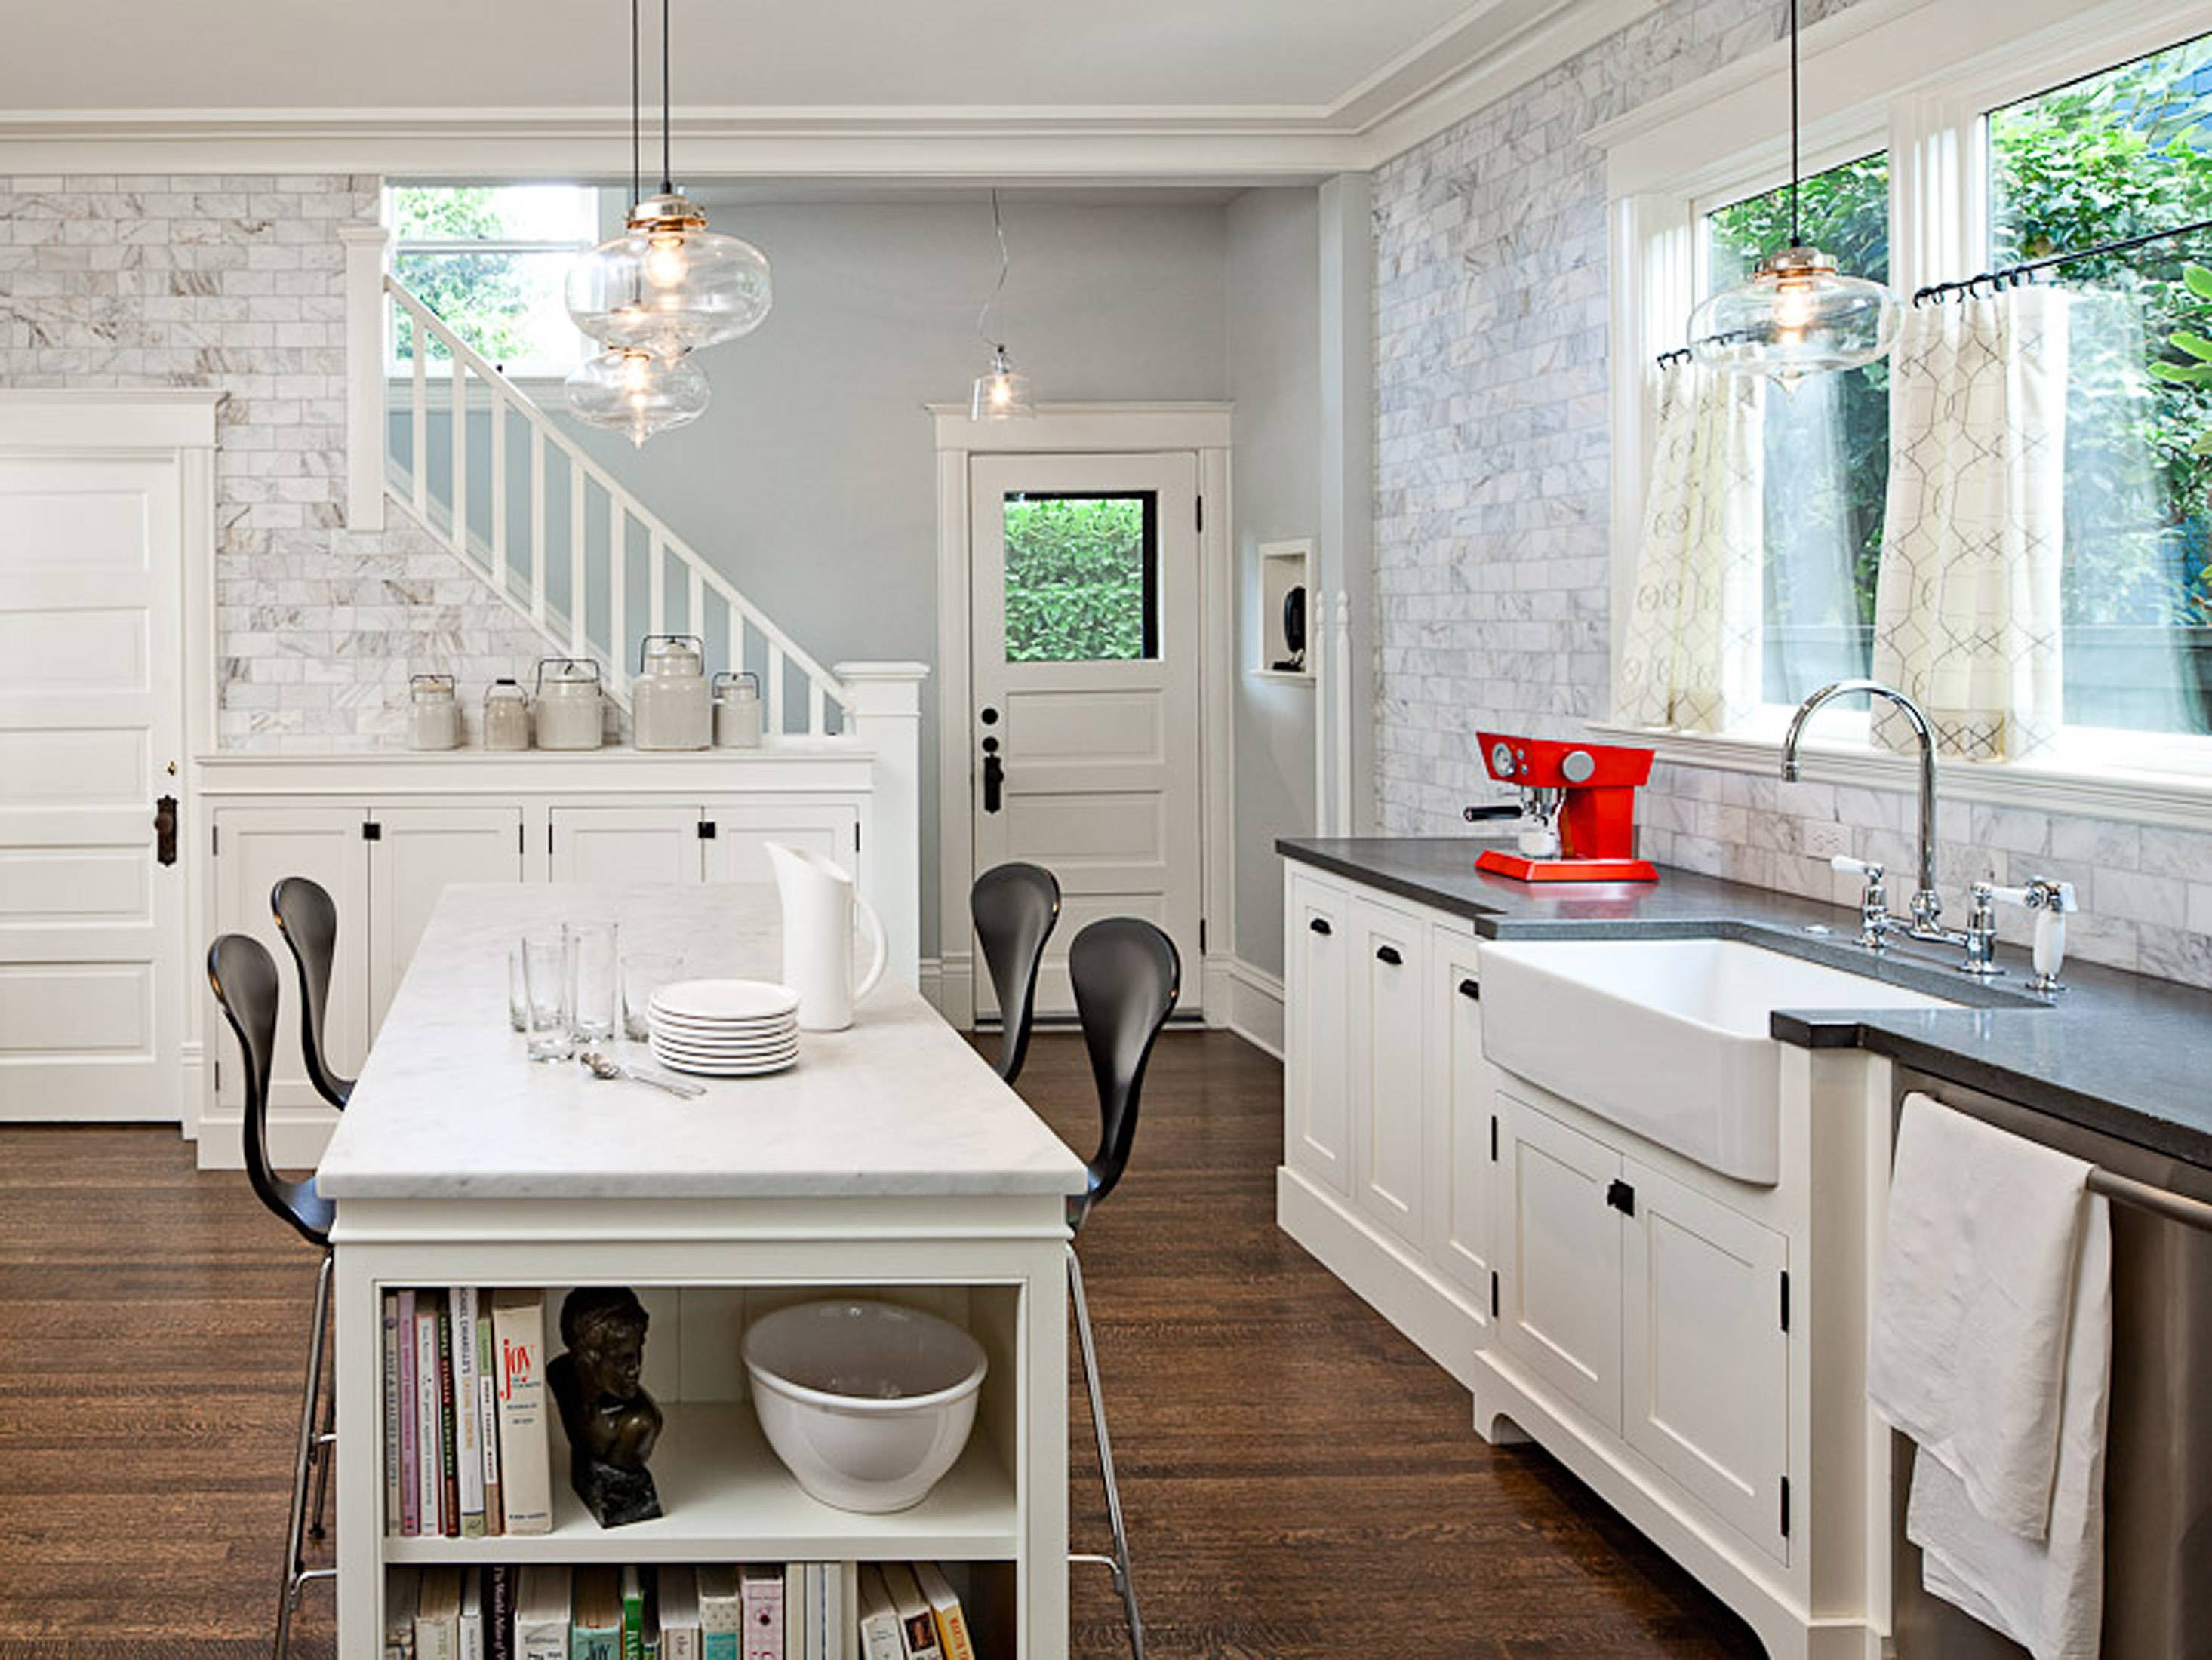 Graceful Kitchen Pendant Lighting Appear Fascinating Twin Drop Pertaining To Kitchen Island Single Pendant Lighting (View 11 of 15)